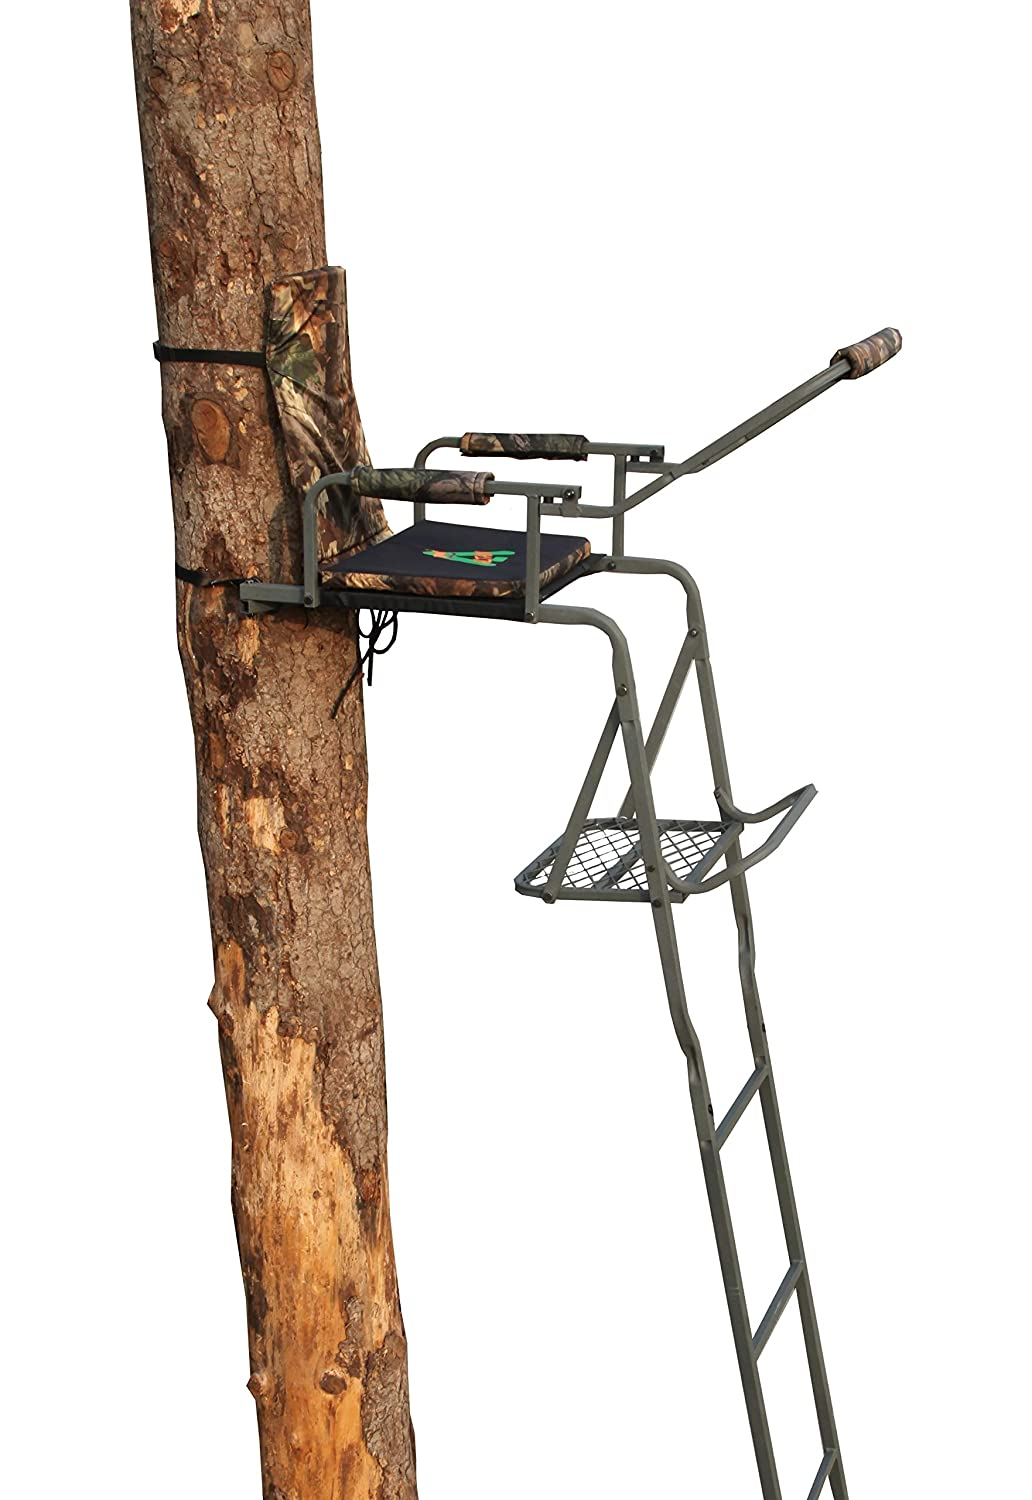 Tree Stands Blinds Amp Accessories Online Shopping For